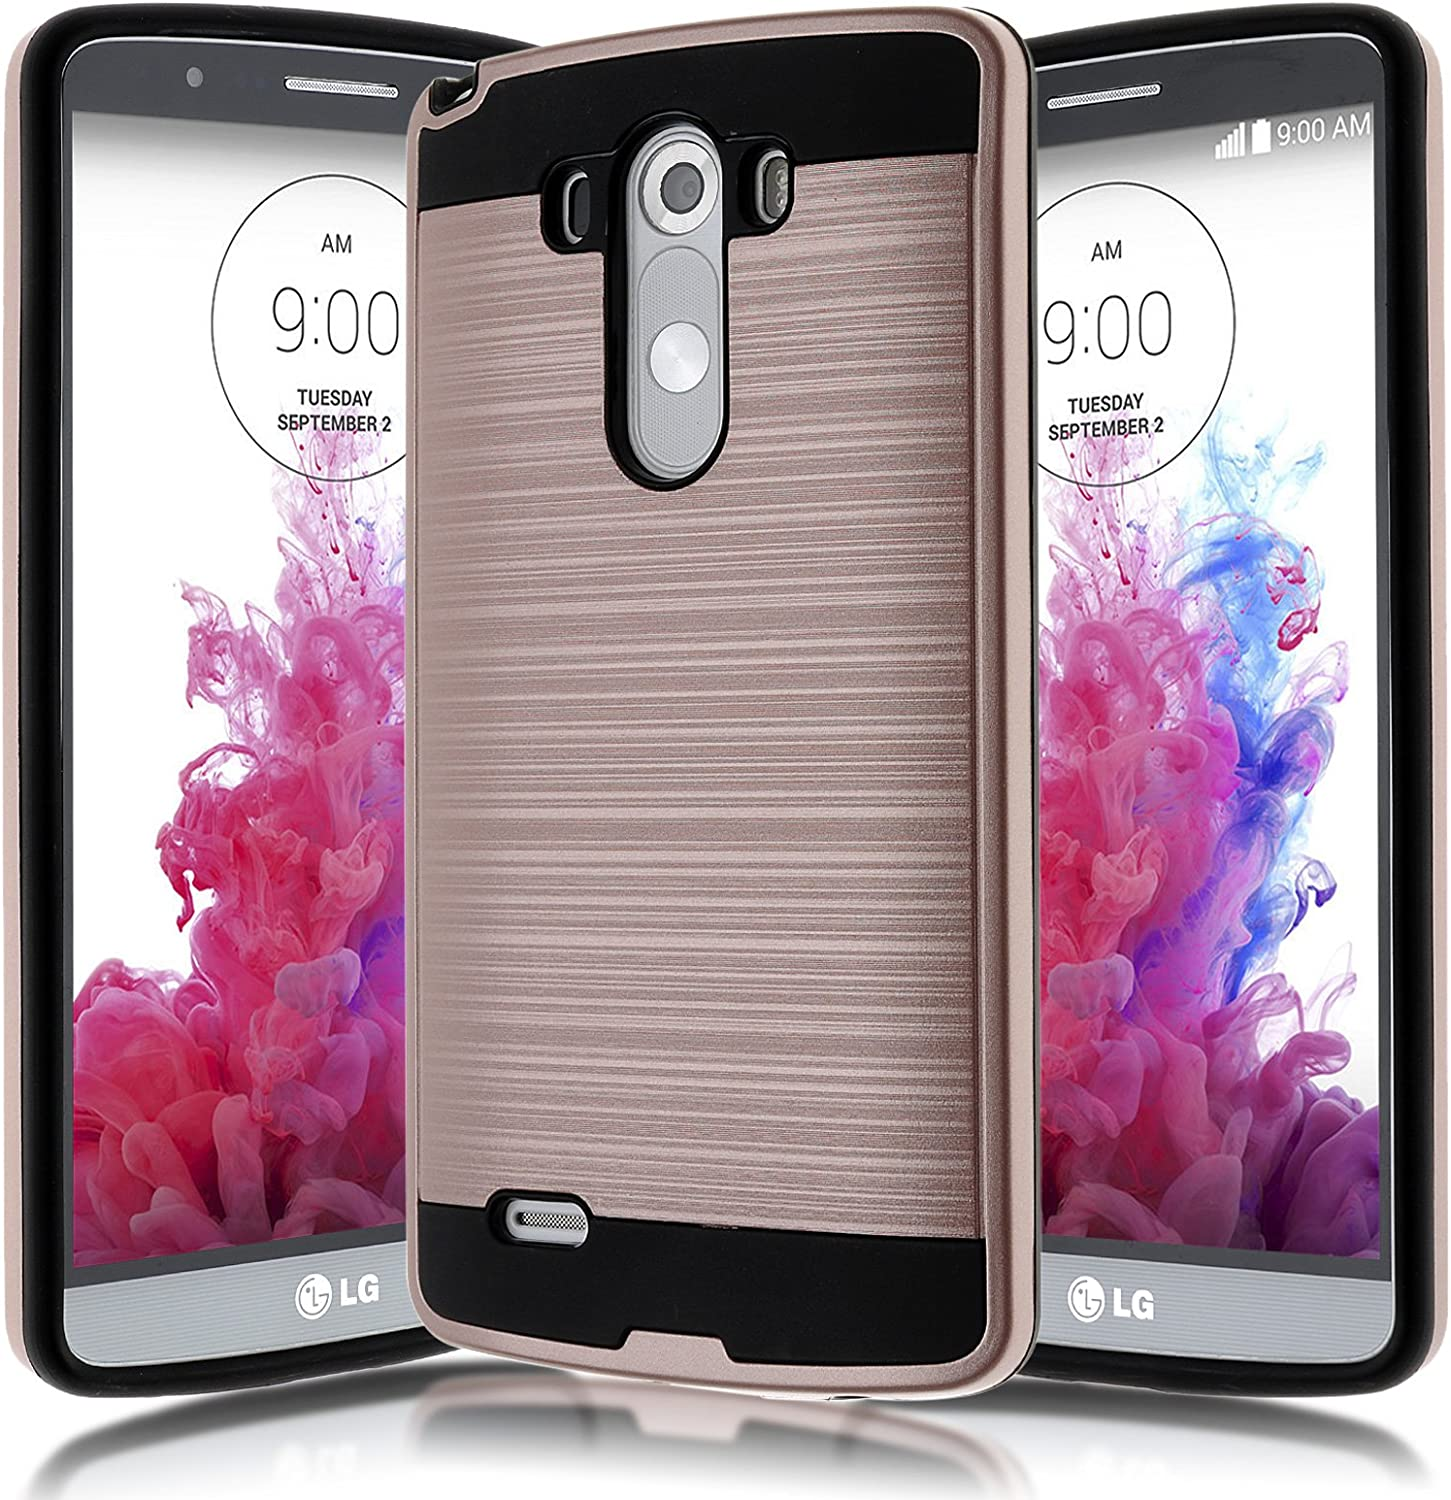 Kmall LG G3 D855 D851 Case, [Brushed Metal Texture] Heavy Duty Shockproof High Impact Resistant Durable Full Body [Maximum Drop Protection][Slim Fit] Hybrid Case Skin Cover Shell for LG G3[Rose Gold]